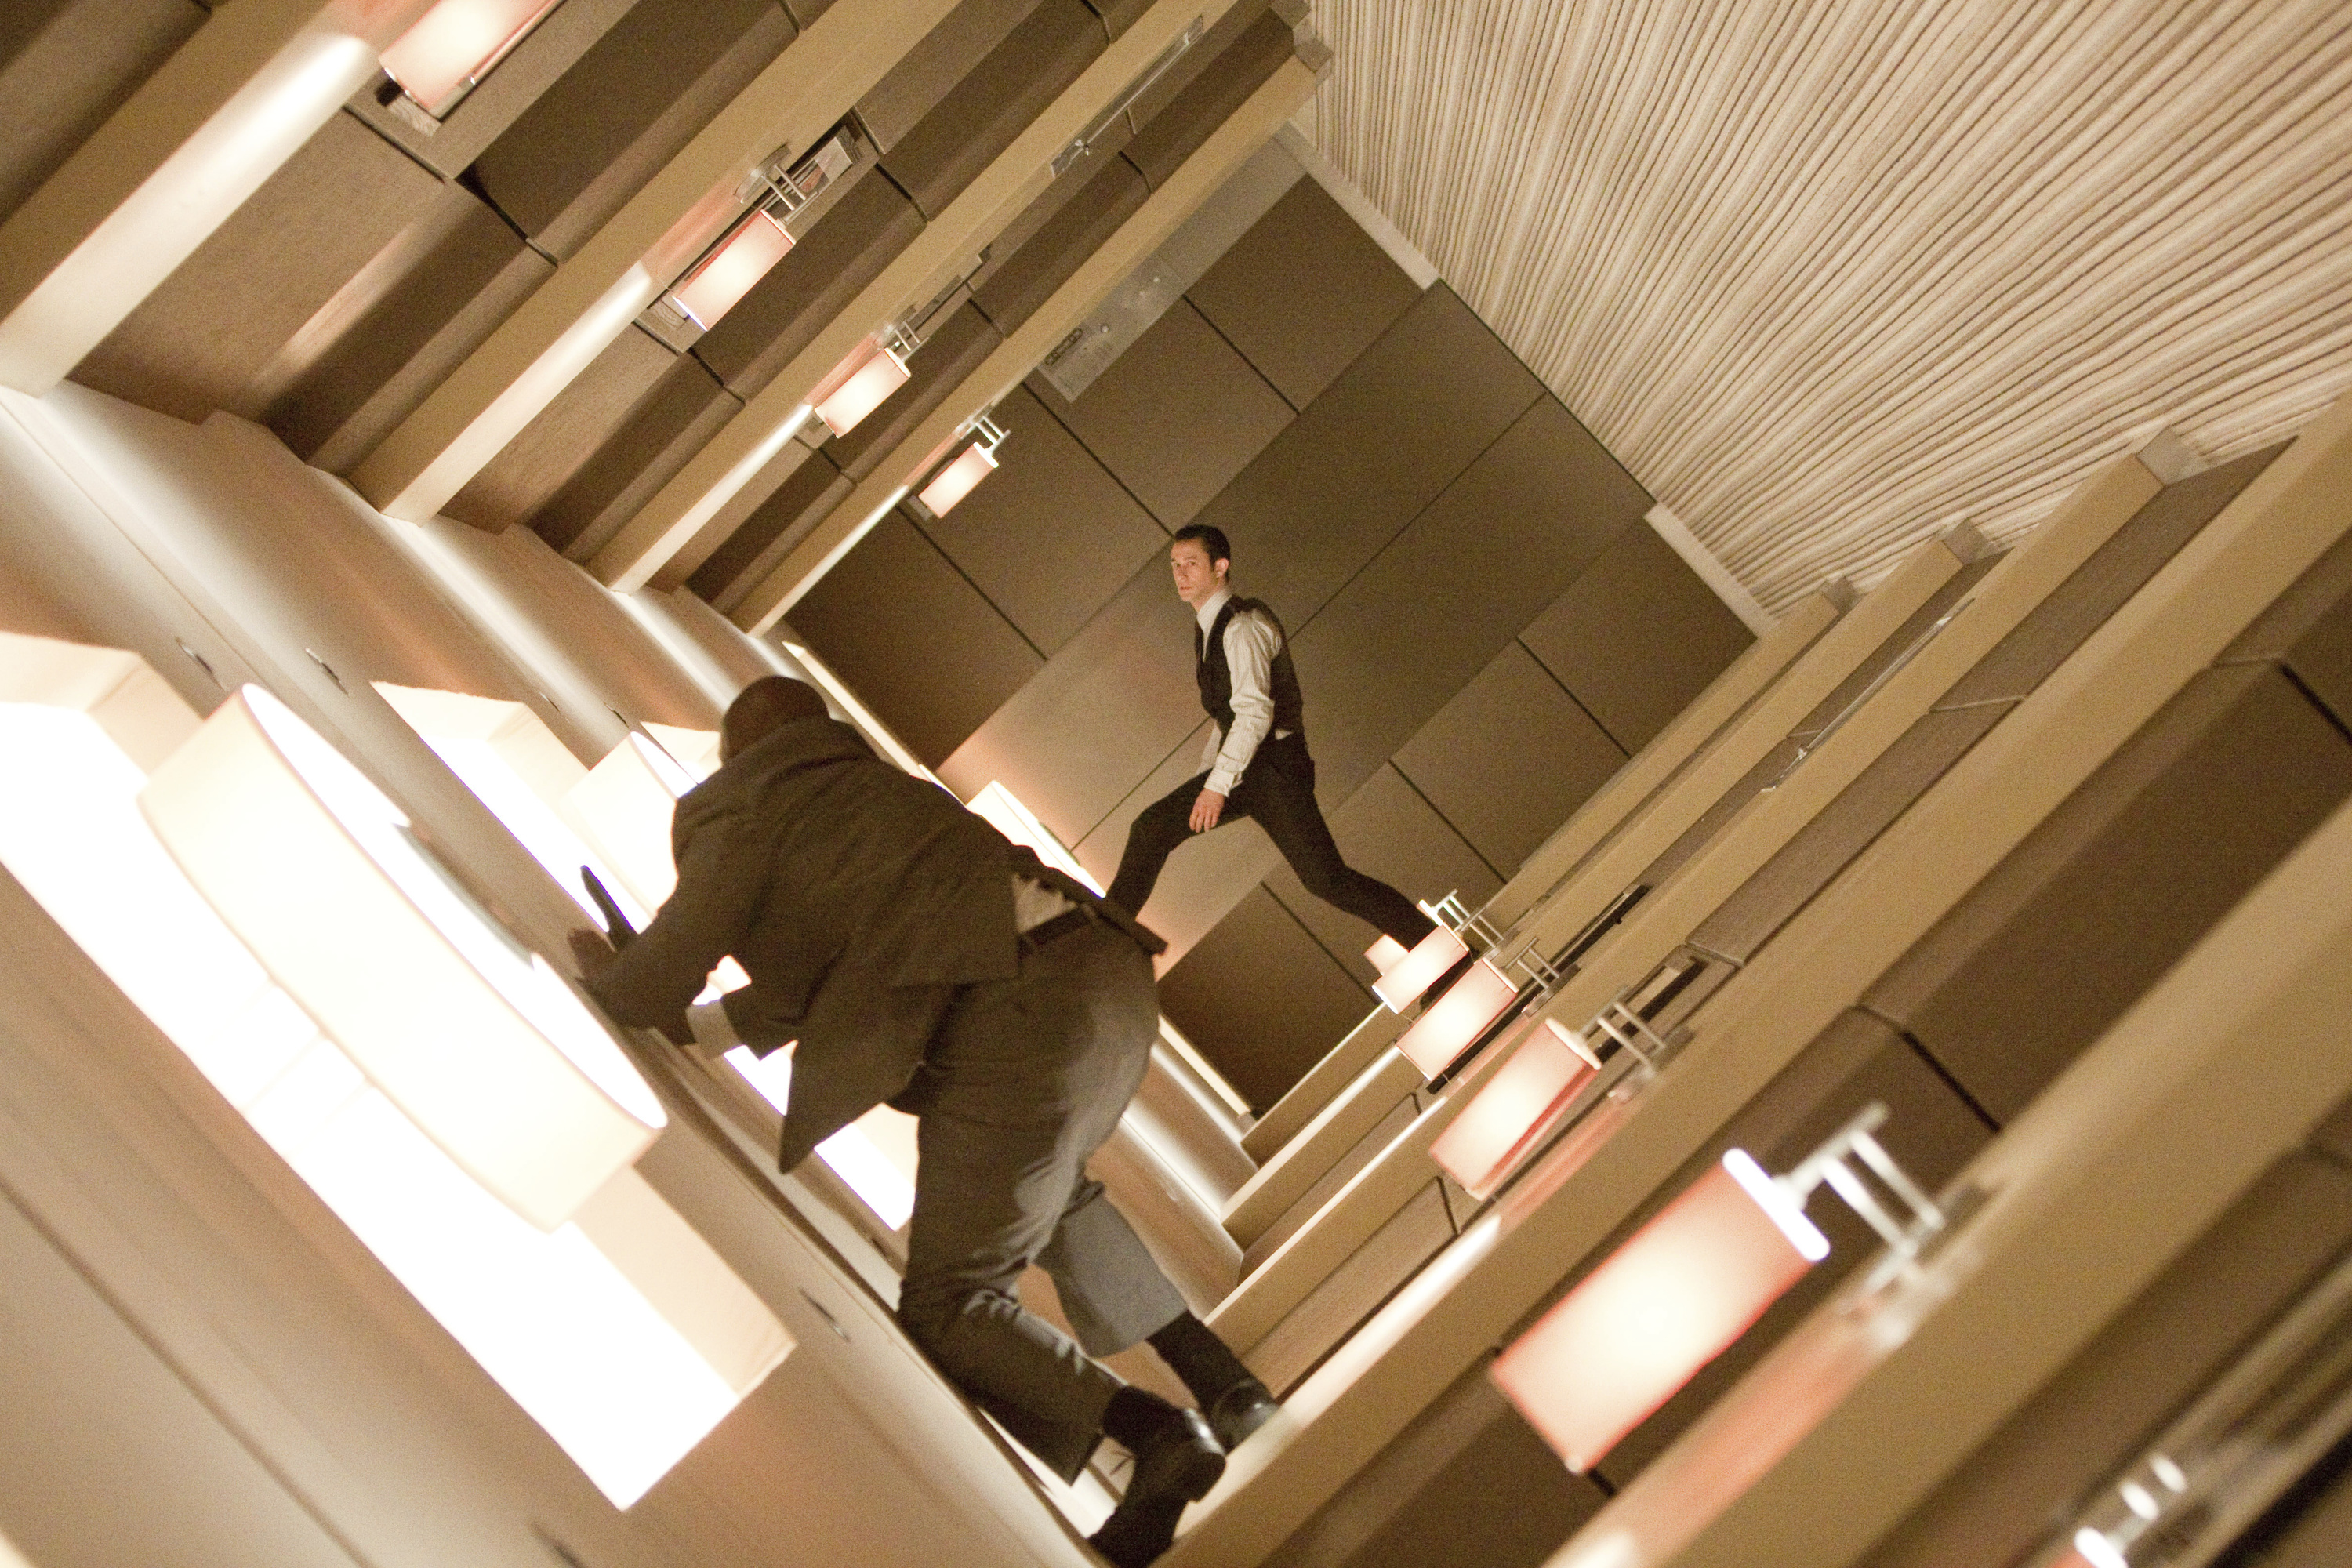 Inception, Joseph Gordon-Levitt and Leonardo DiCaprio